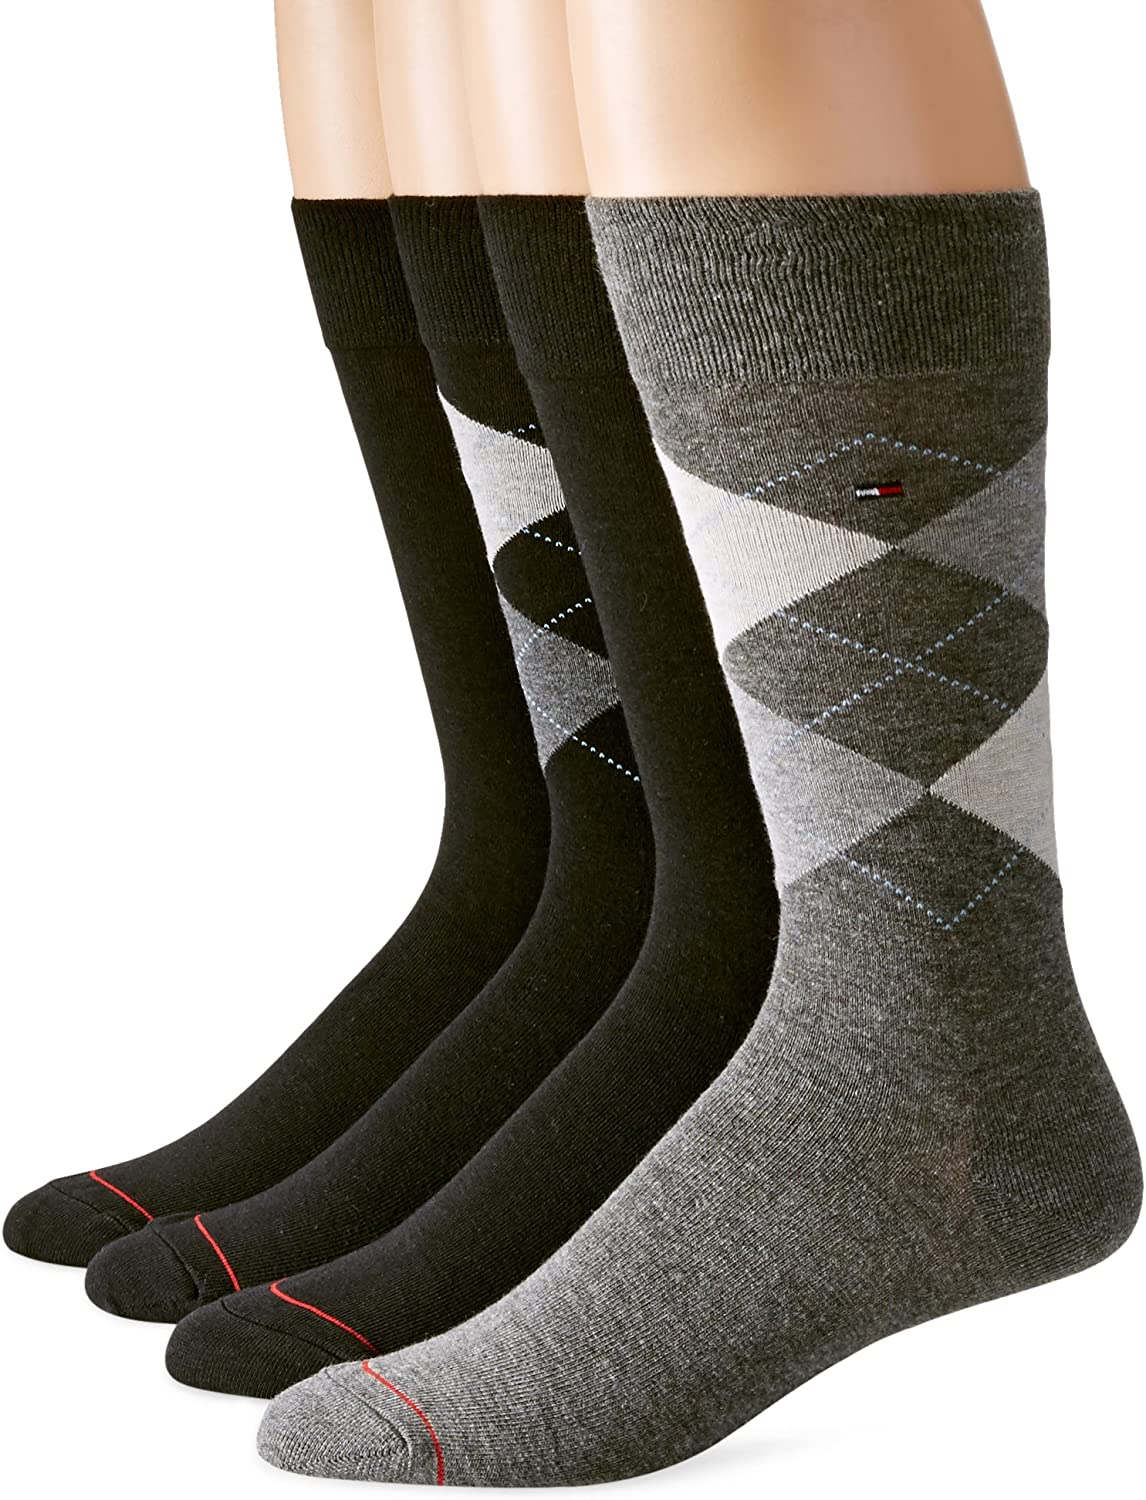 Tommy Hilfiger Men's 4 Pack Argyle Crew Socks